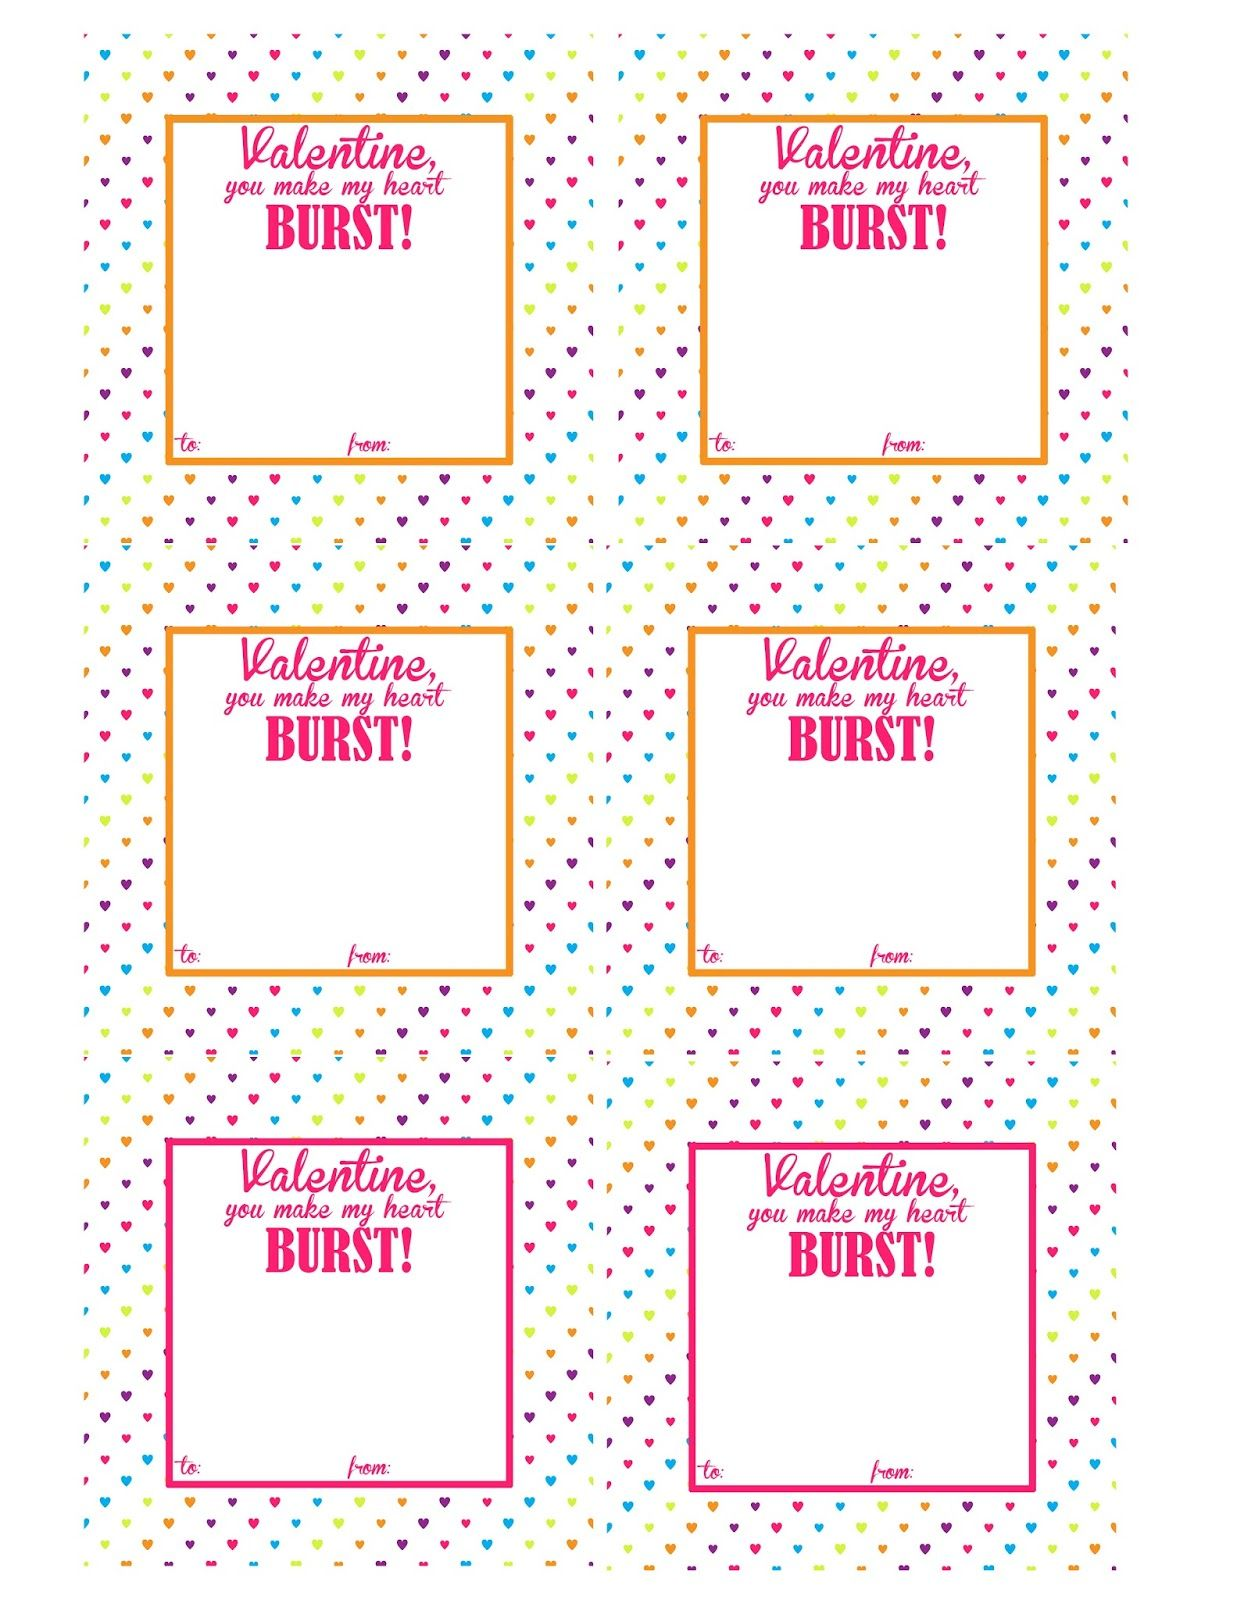 graphic about Starburst Valentine Printable identified as Starburst Valentine Guidelines Free of charge Printable Valentine